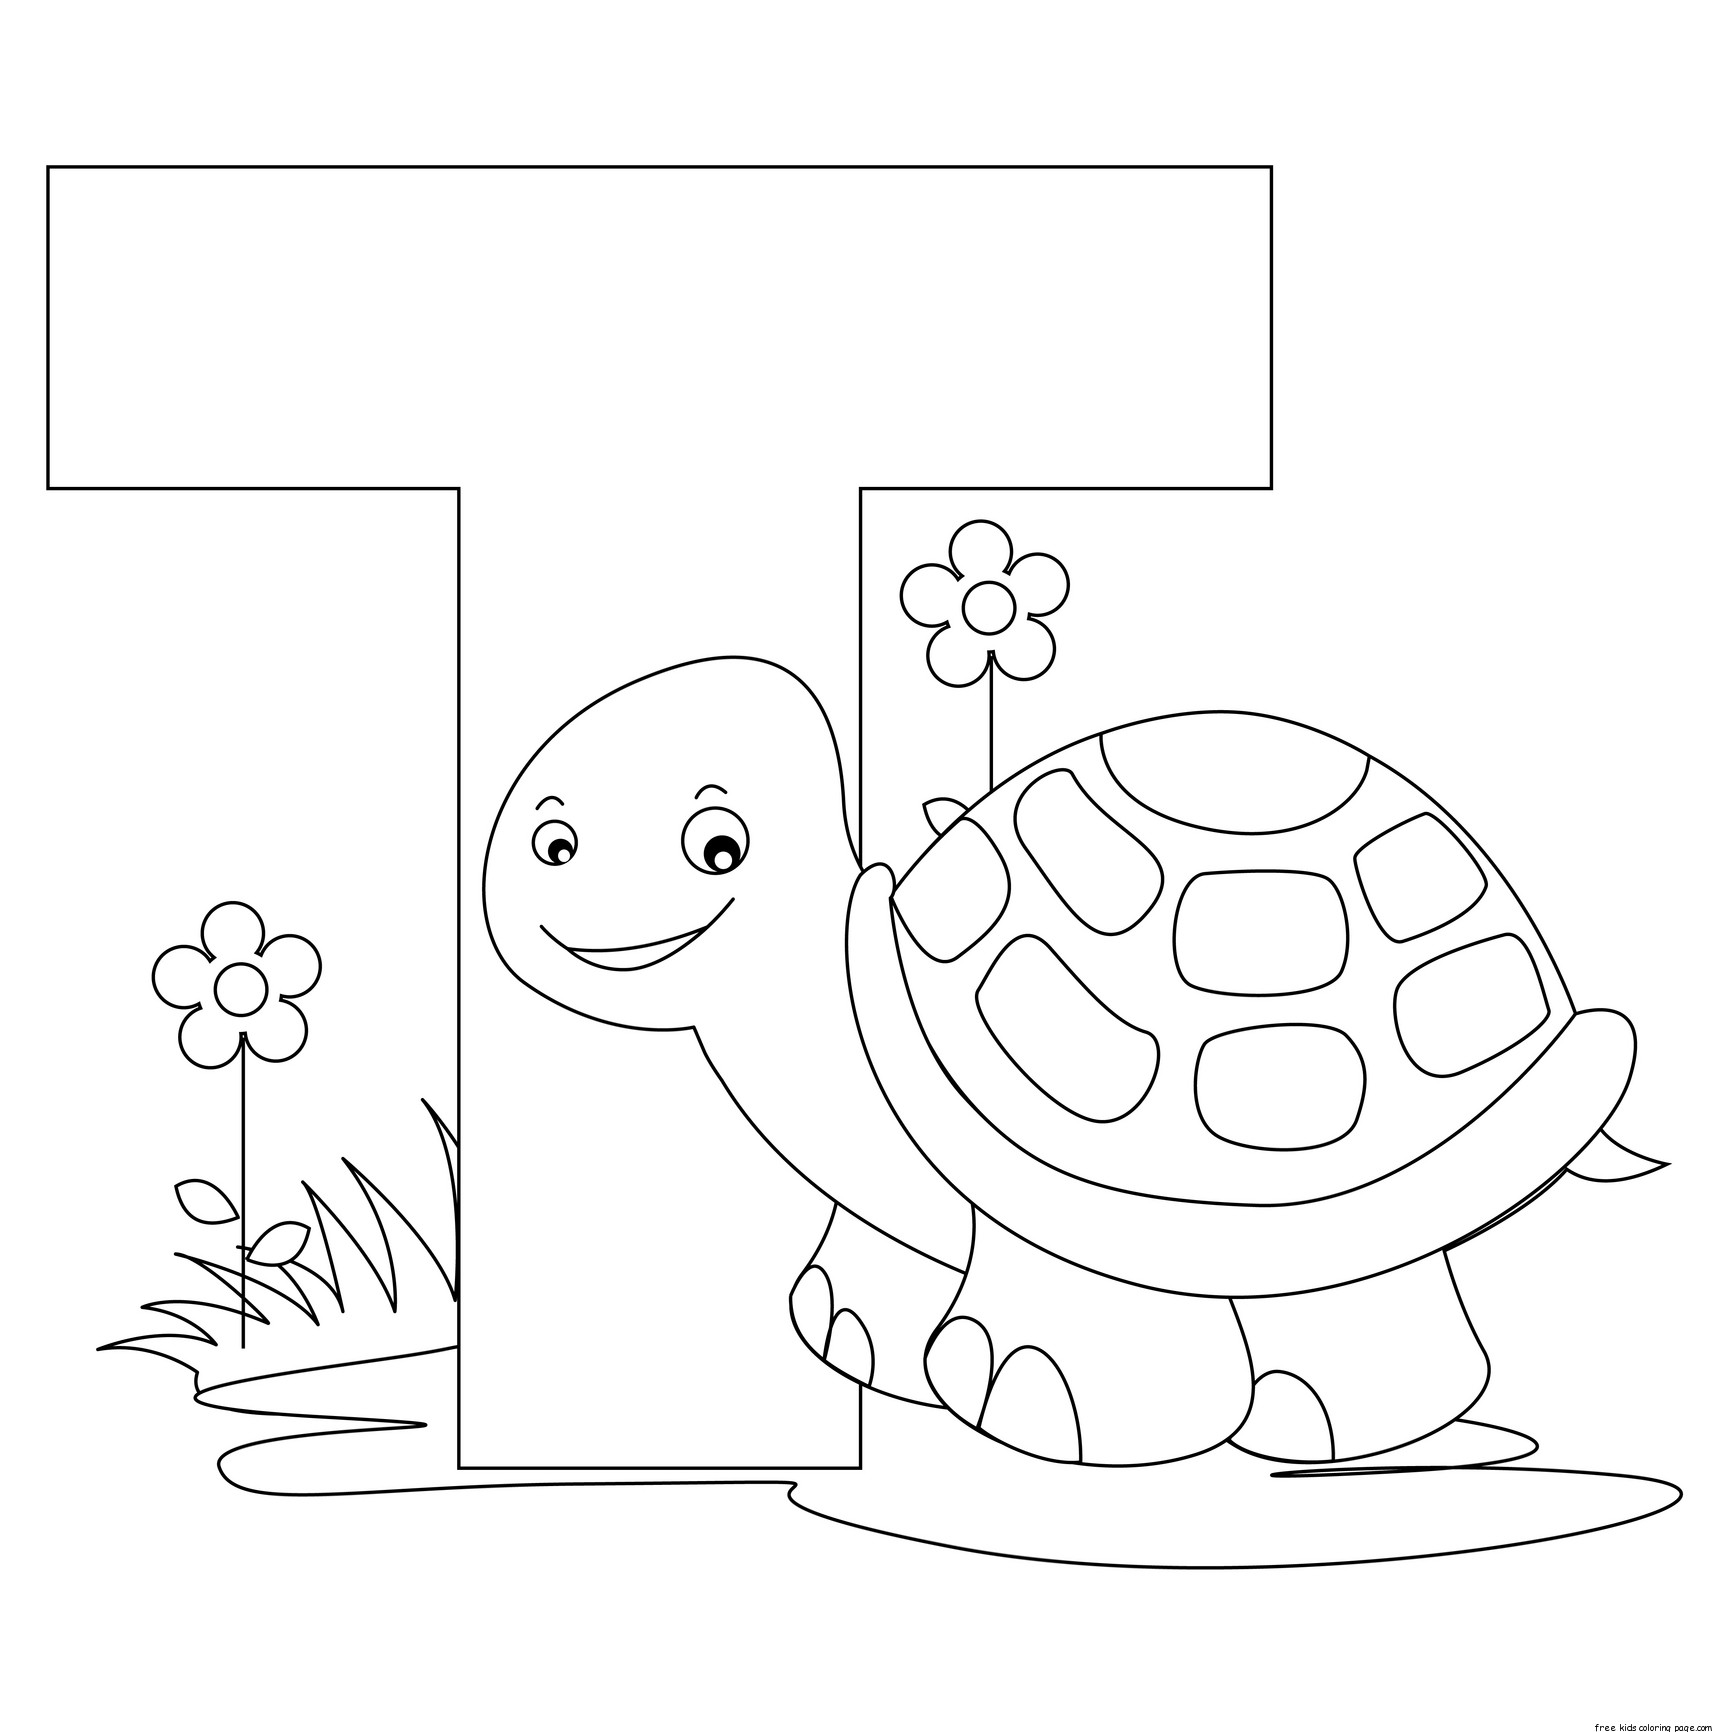 toddler abc coloring pages animal alphabets coloring pages coloring pages for kids toddler pages abc coloring